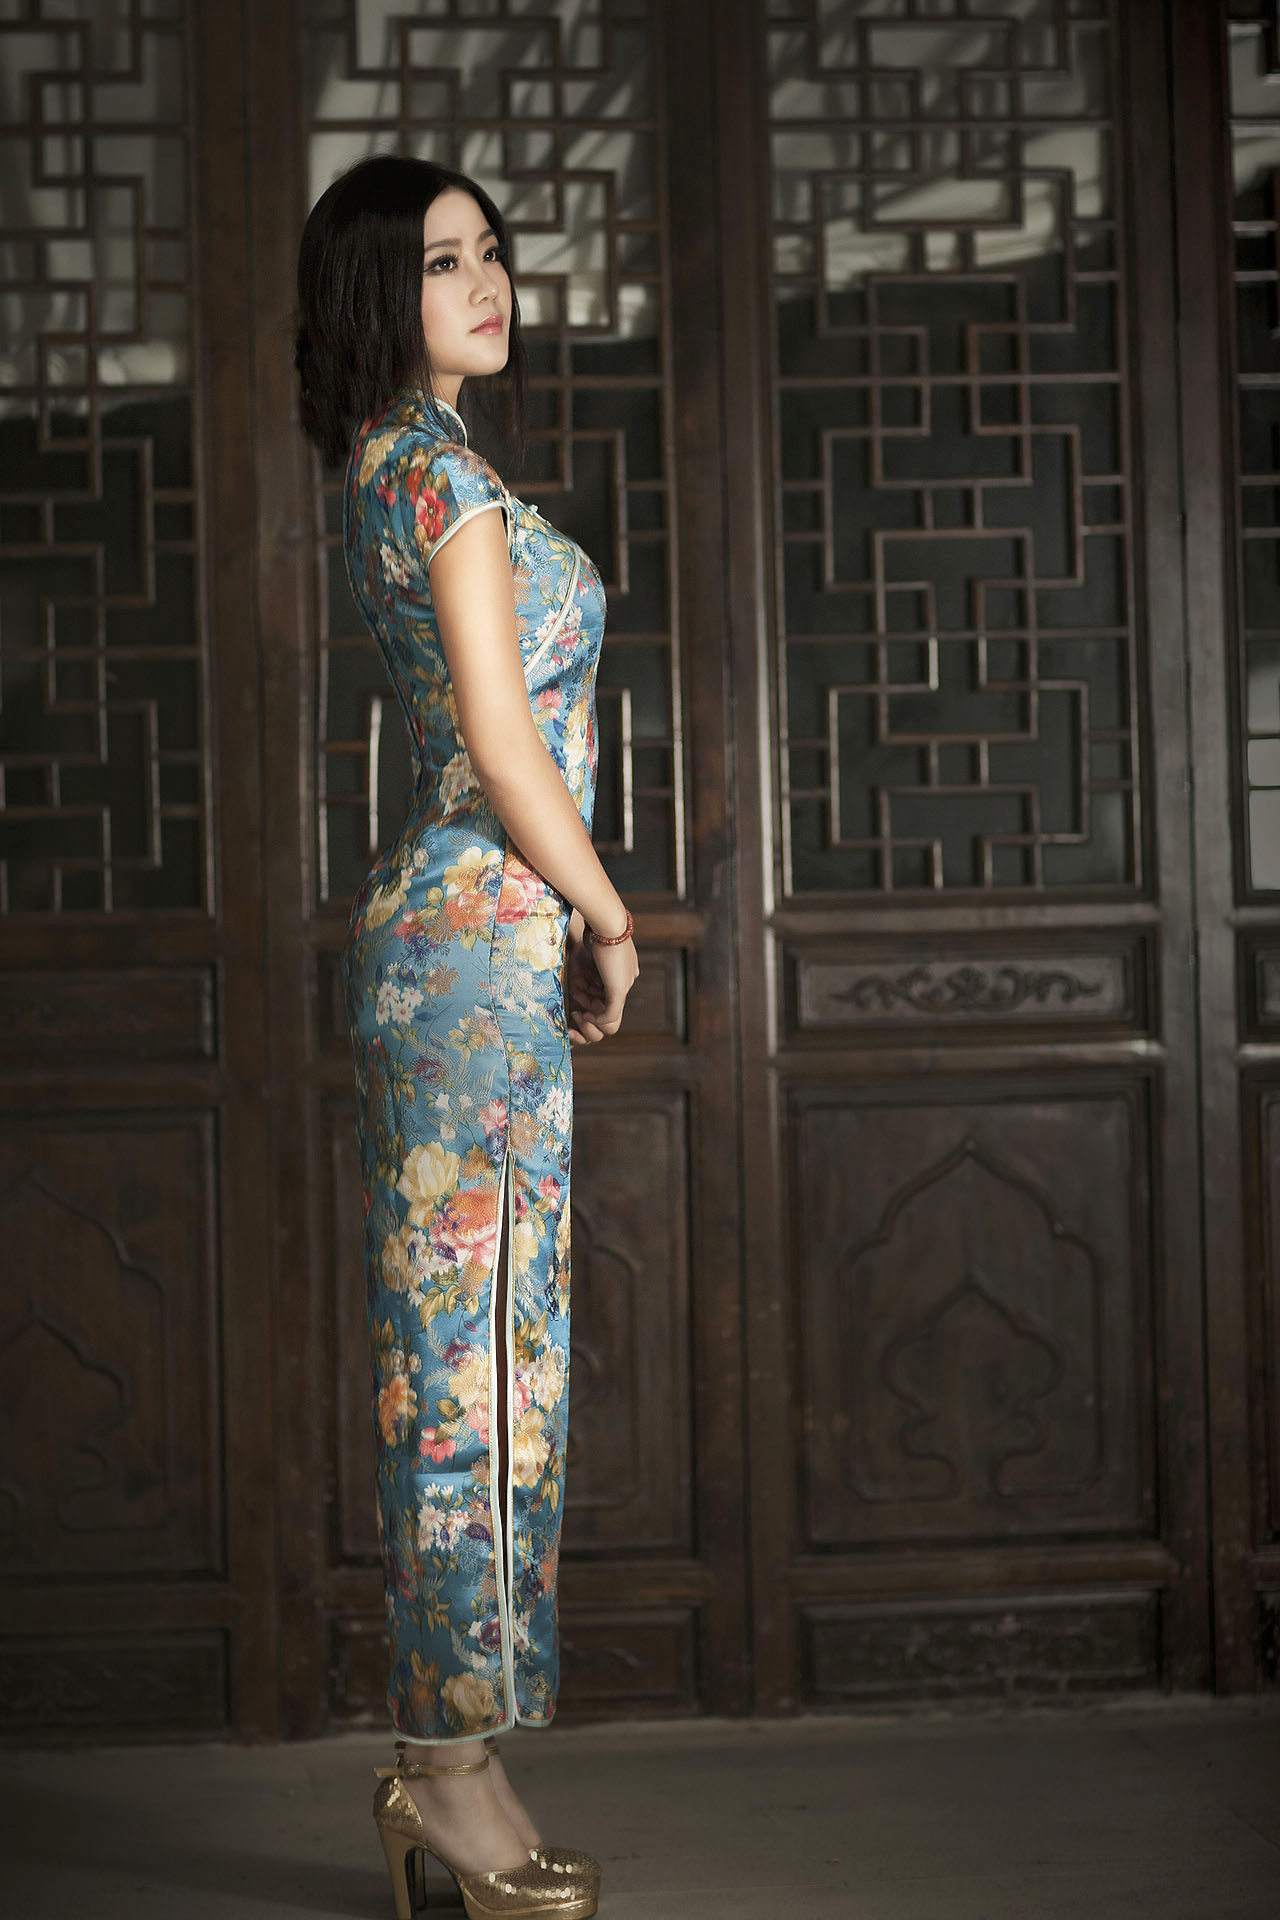 Blue cheongsam girl HD Photo-Traditional Plum Blossom Girl Cheongsam